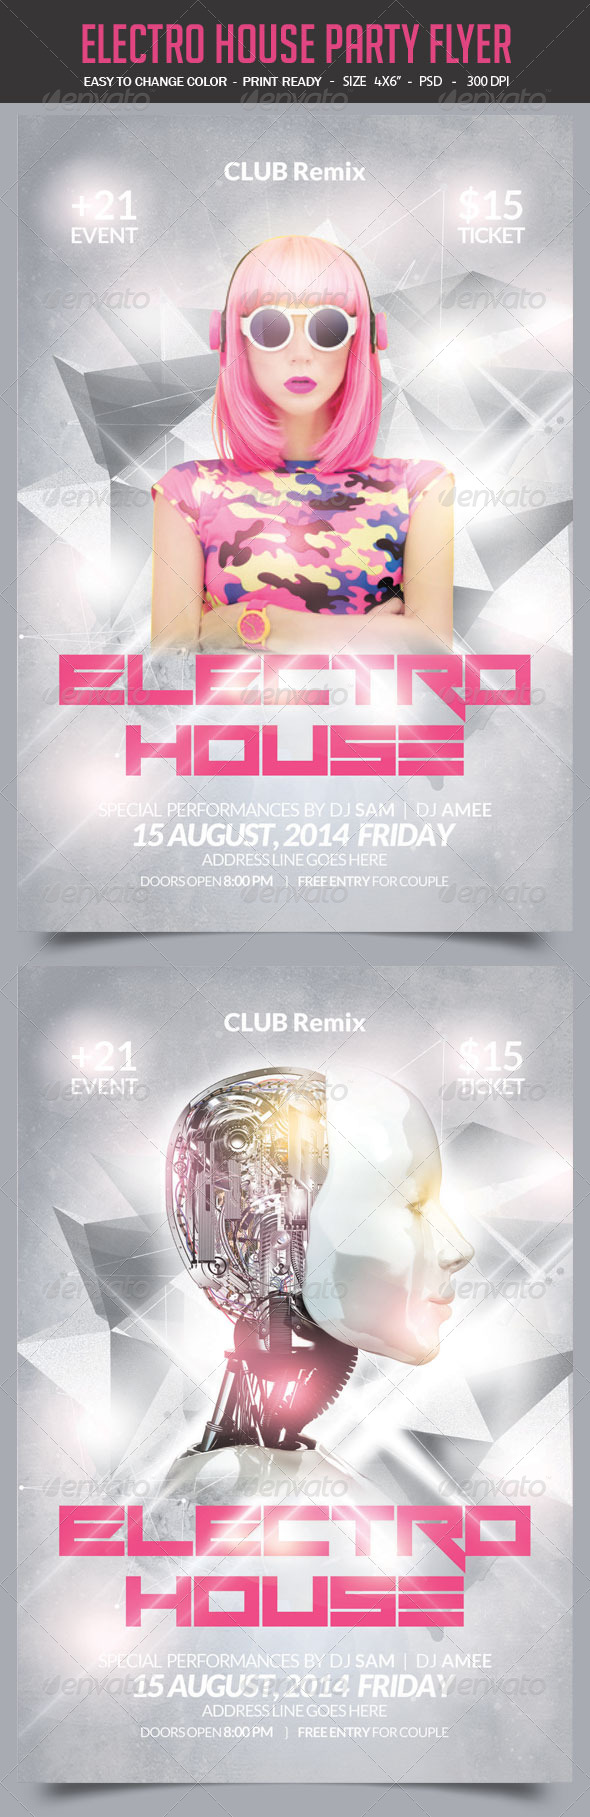 GraphicRiver Electro House Party Flyer 8766903